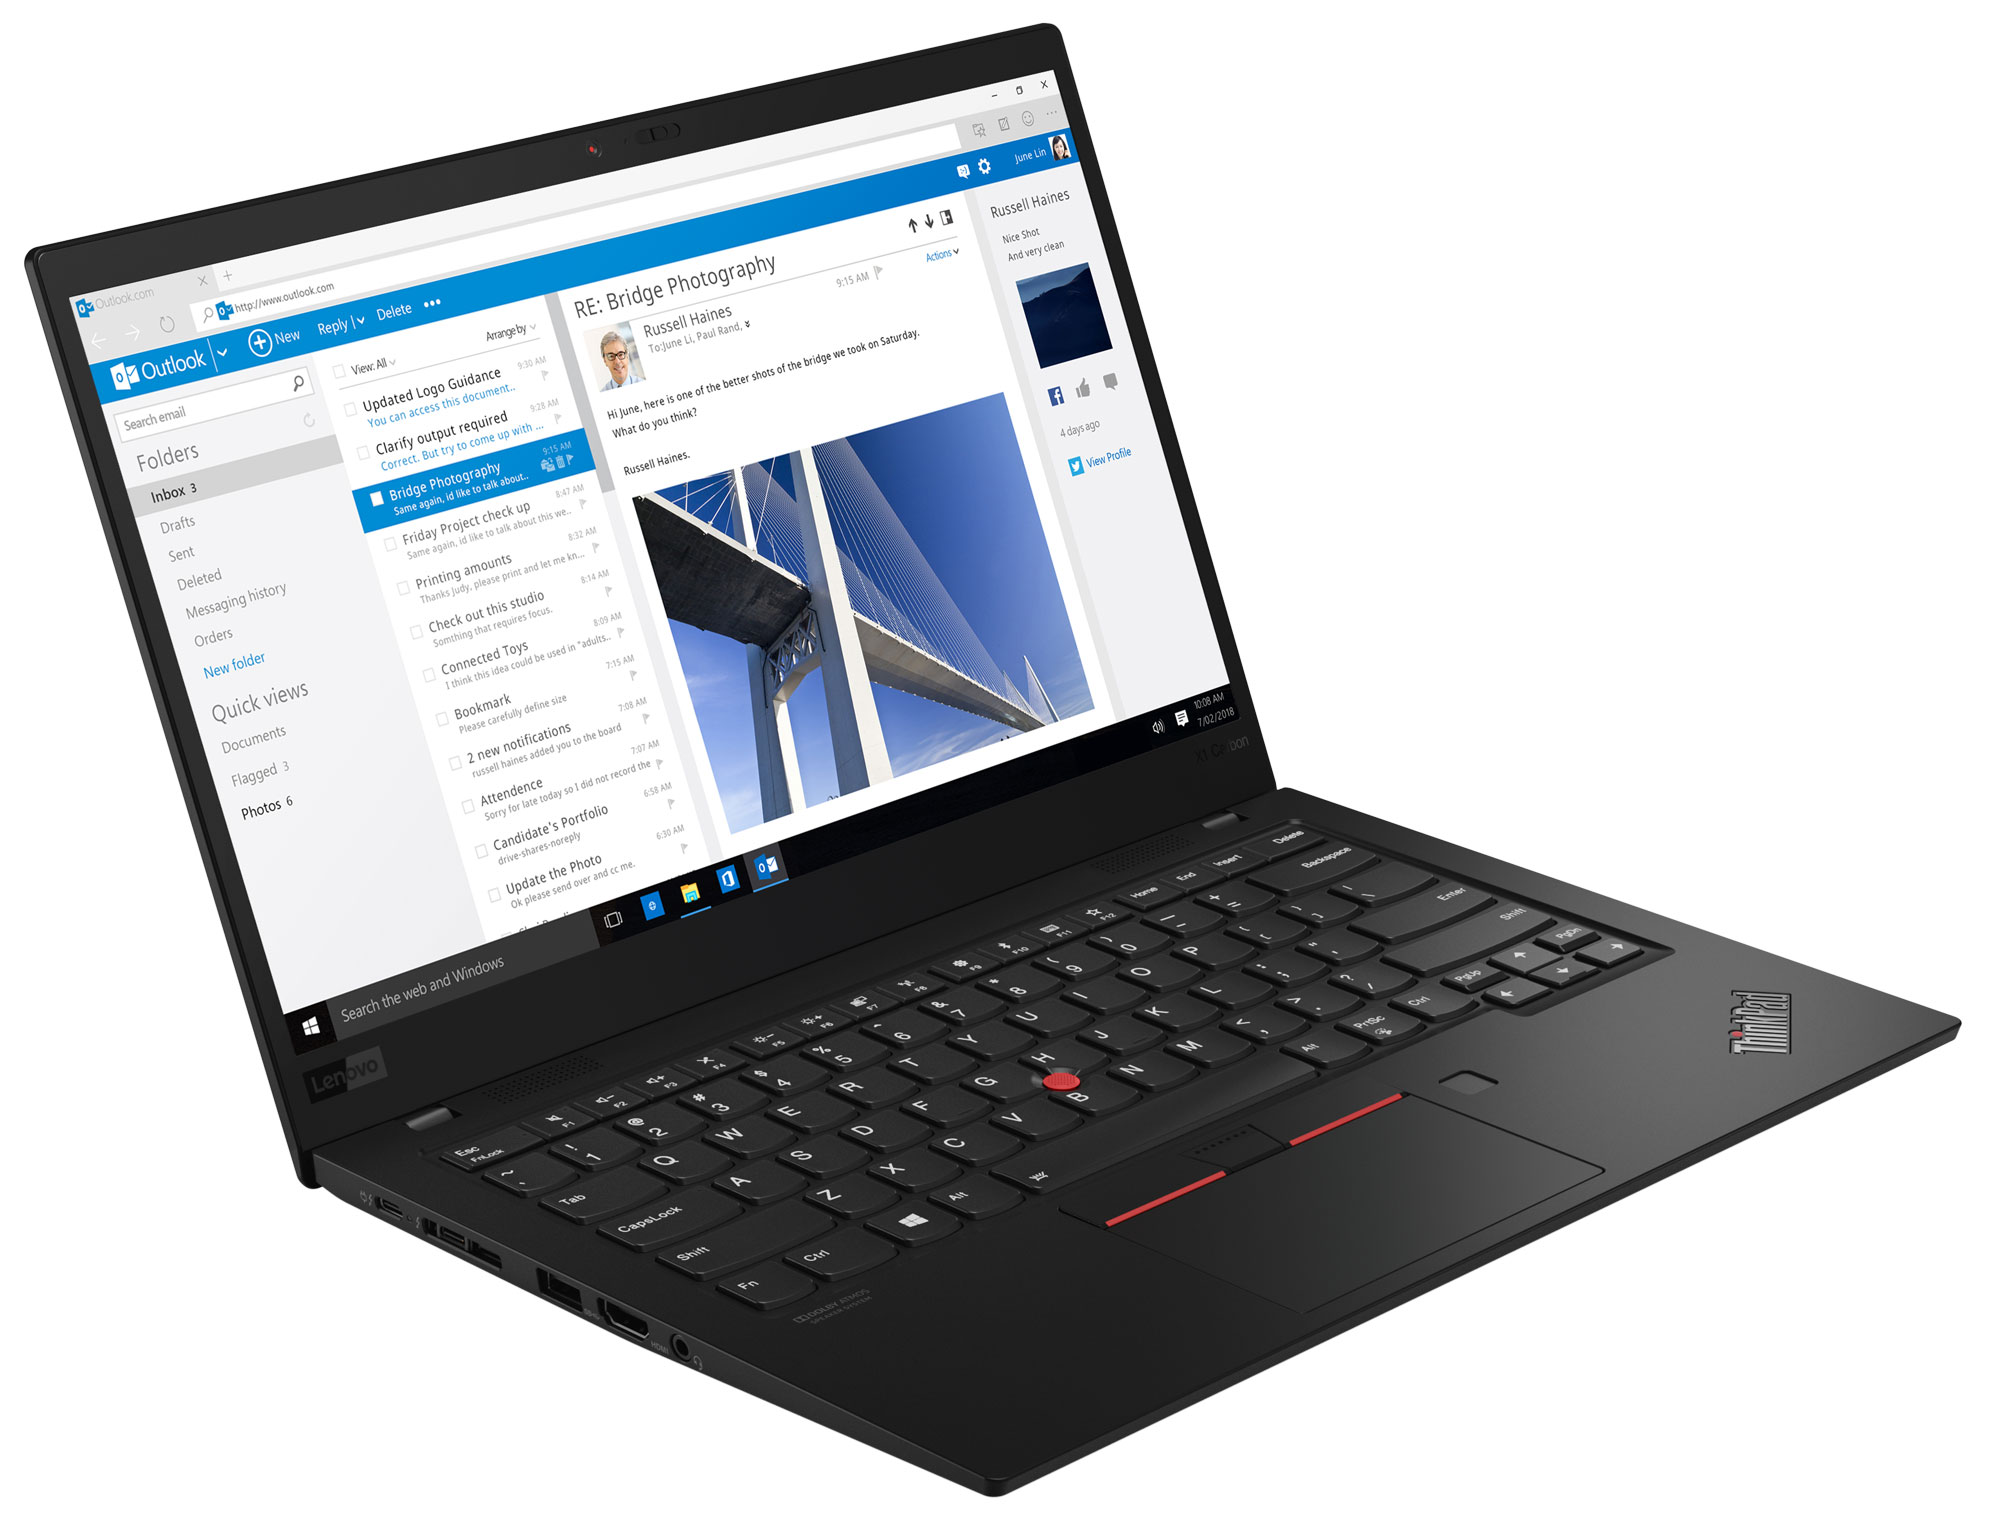 Фото  Ультрабук ThinkPad X1 Carbon 7th Gen (20QD003CRT)